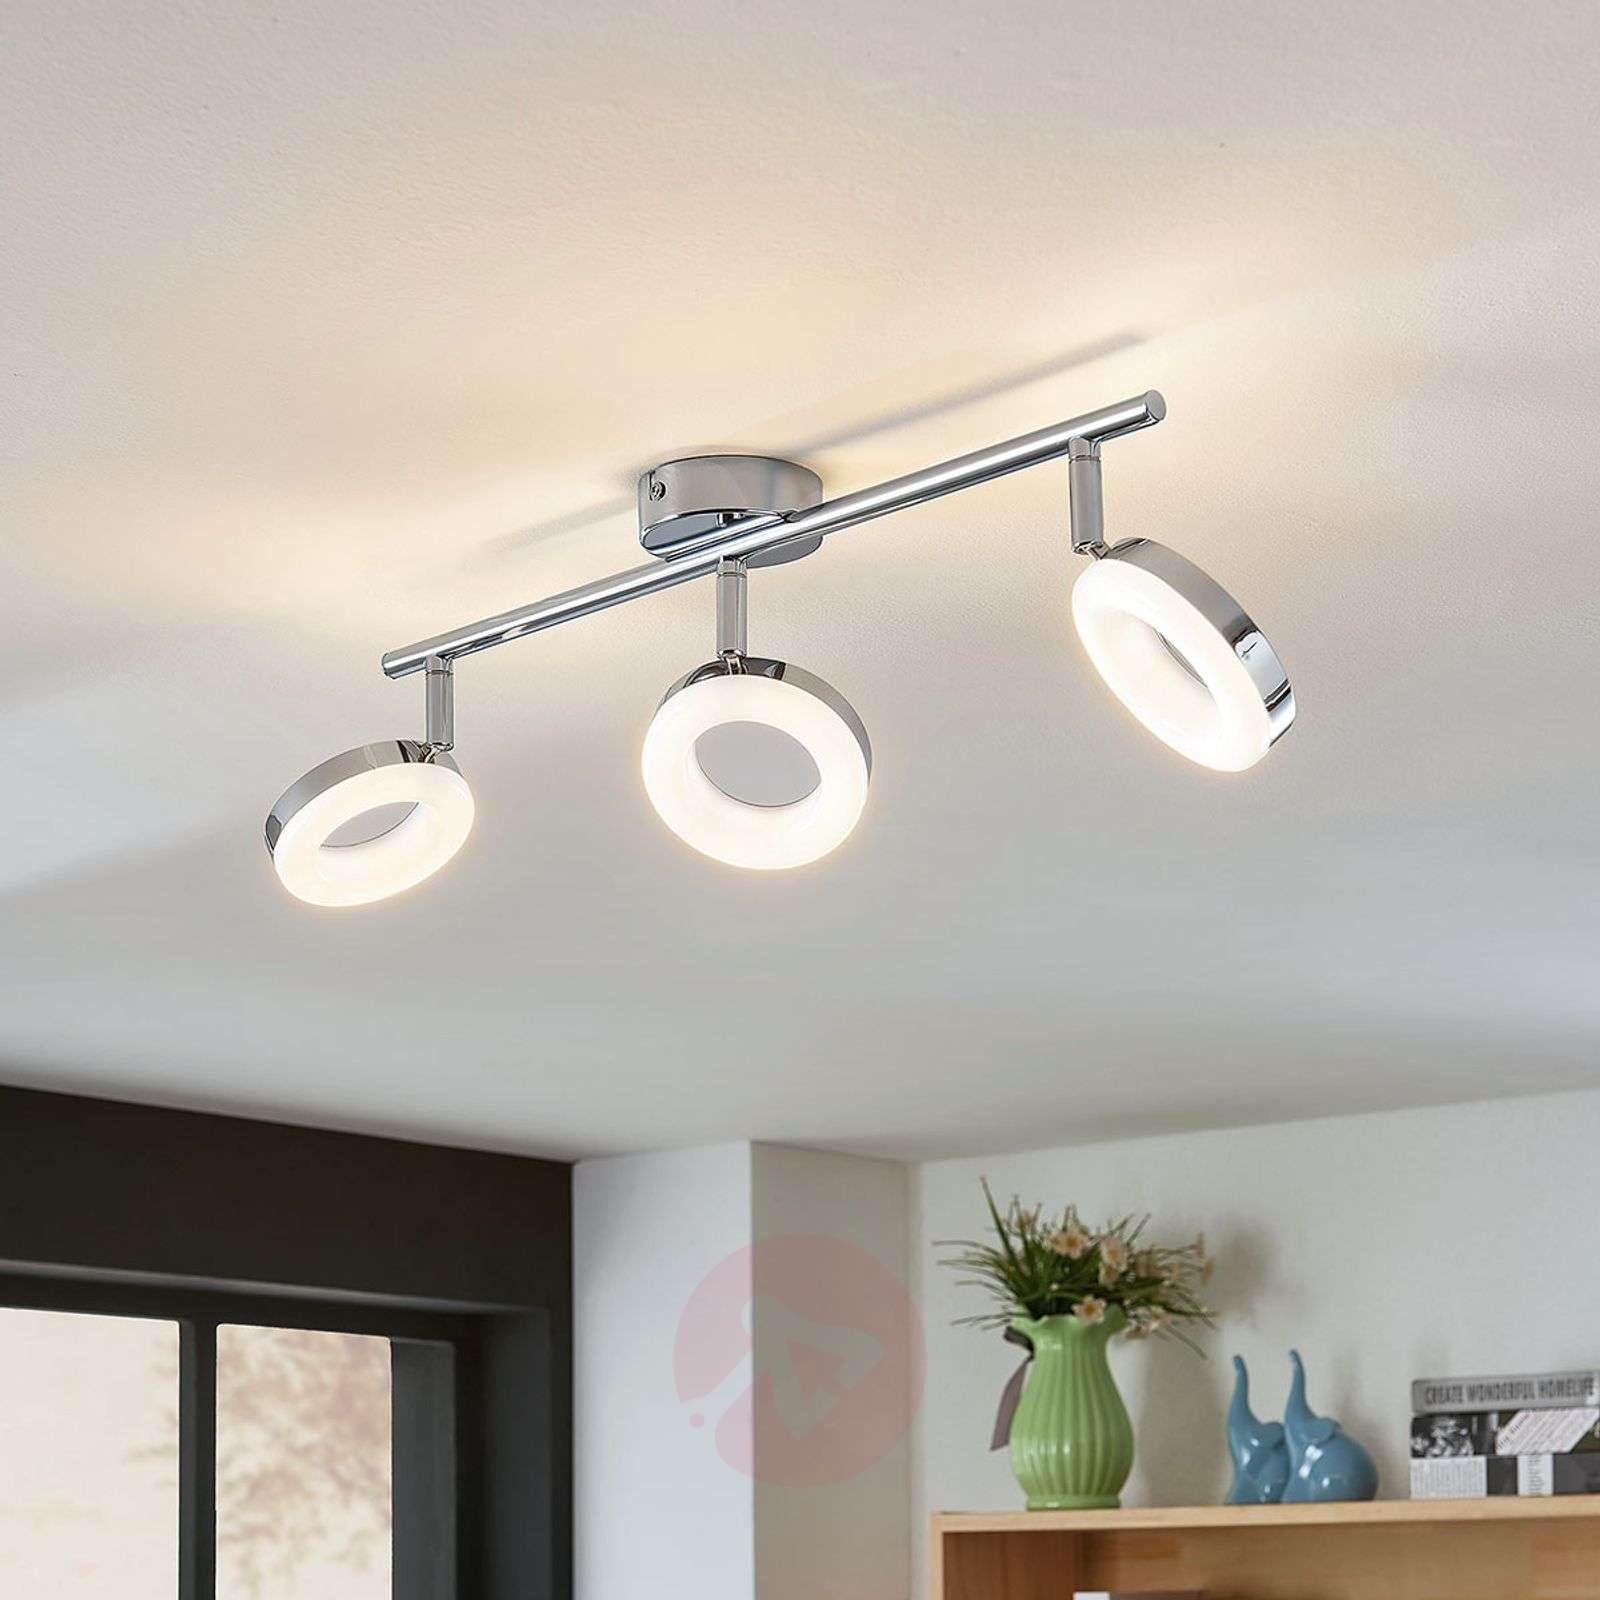 Led ceiling light ringo 3 bulb long